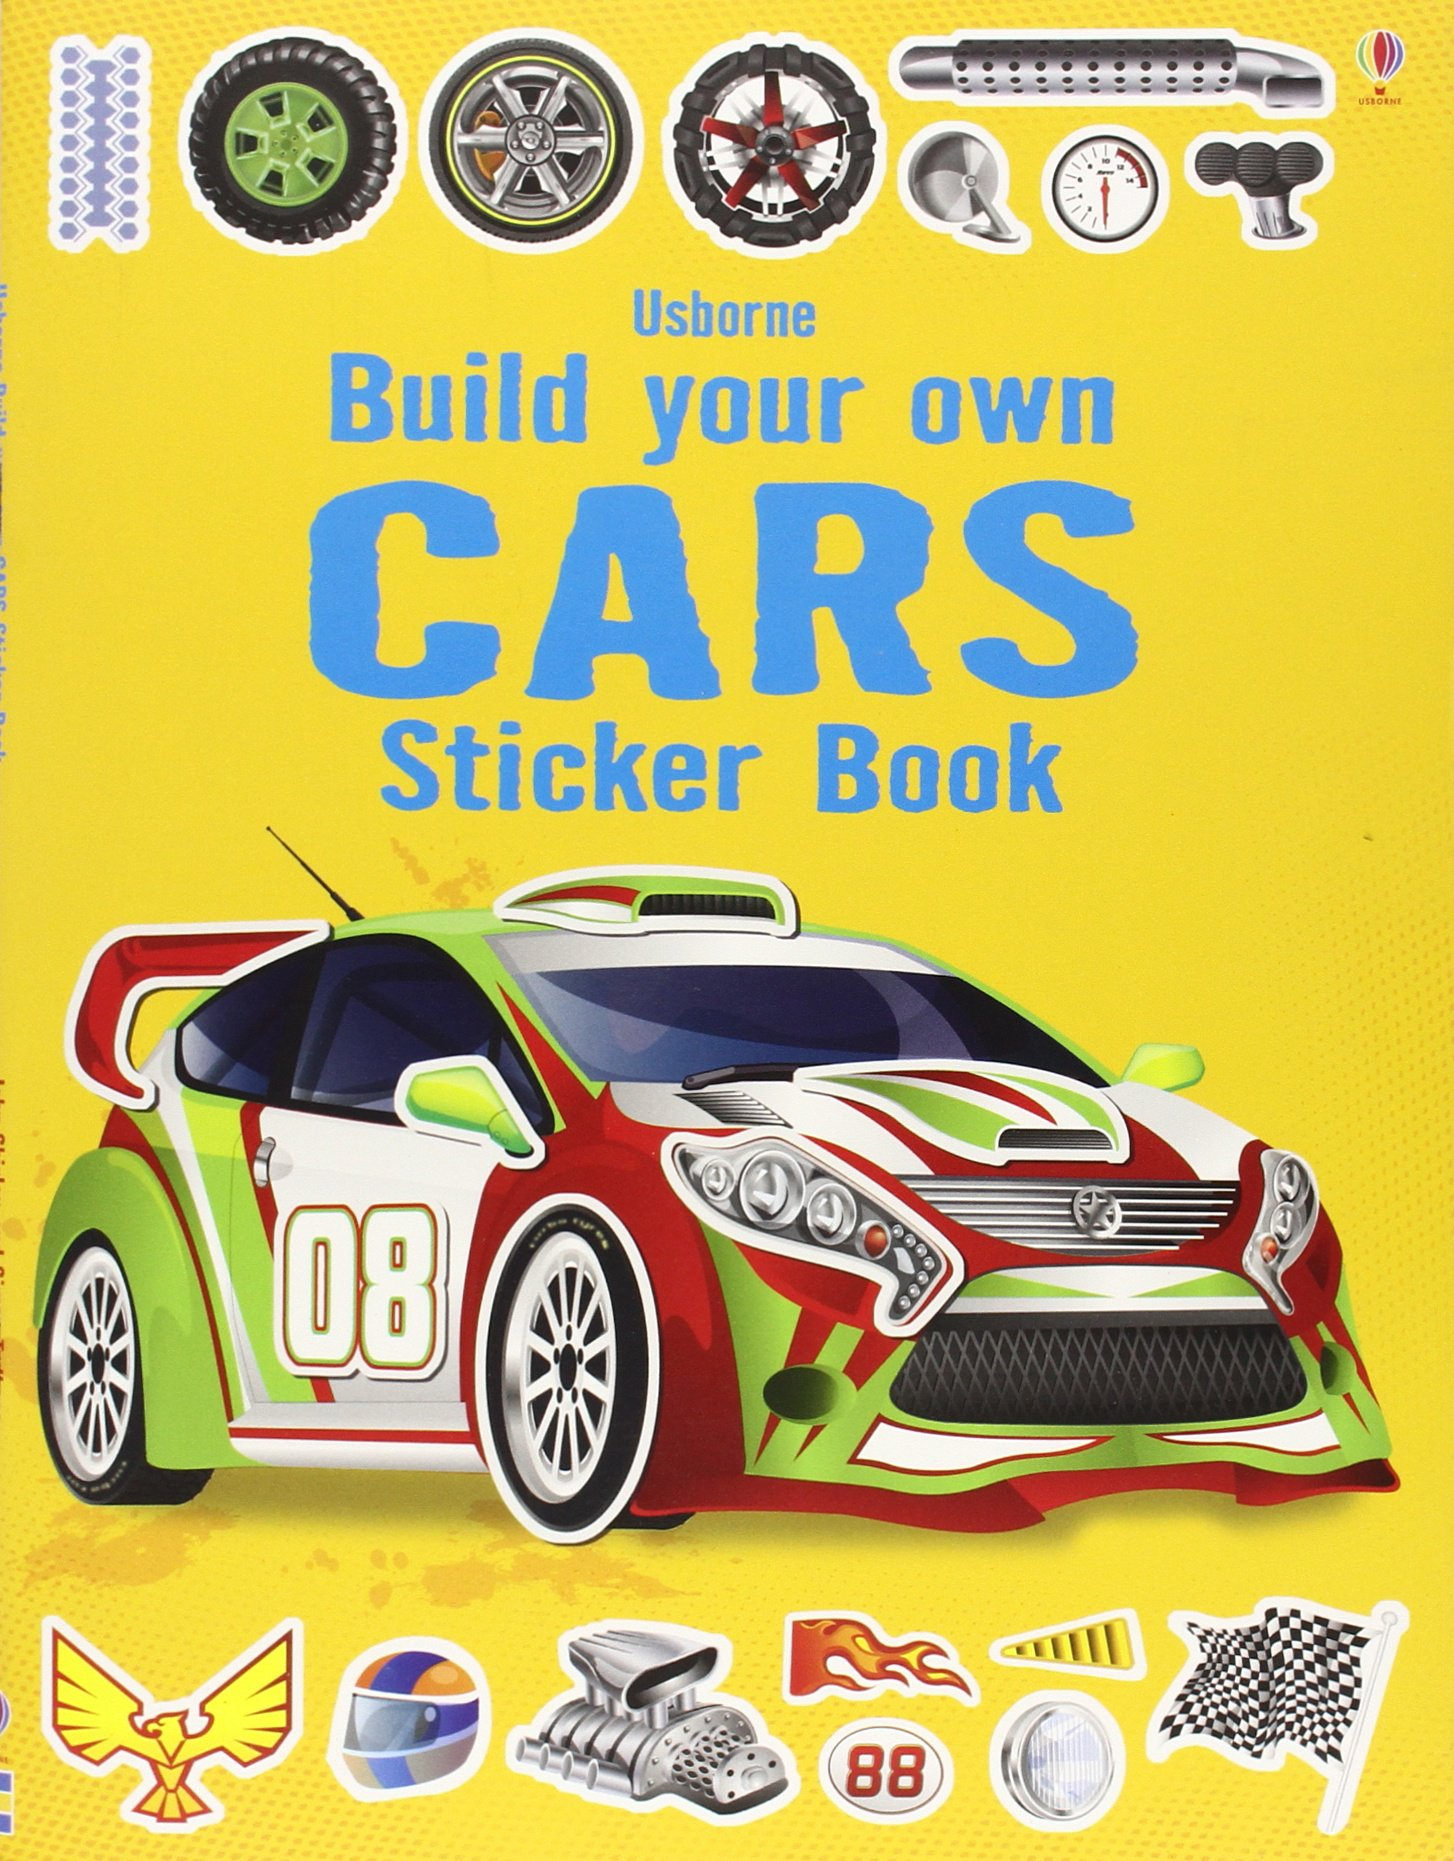 Design your own car sticker uk - Build Your Own Cars Sticker Book Build Your Own Sticker Books